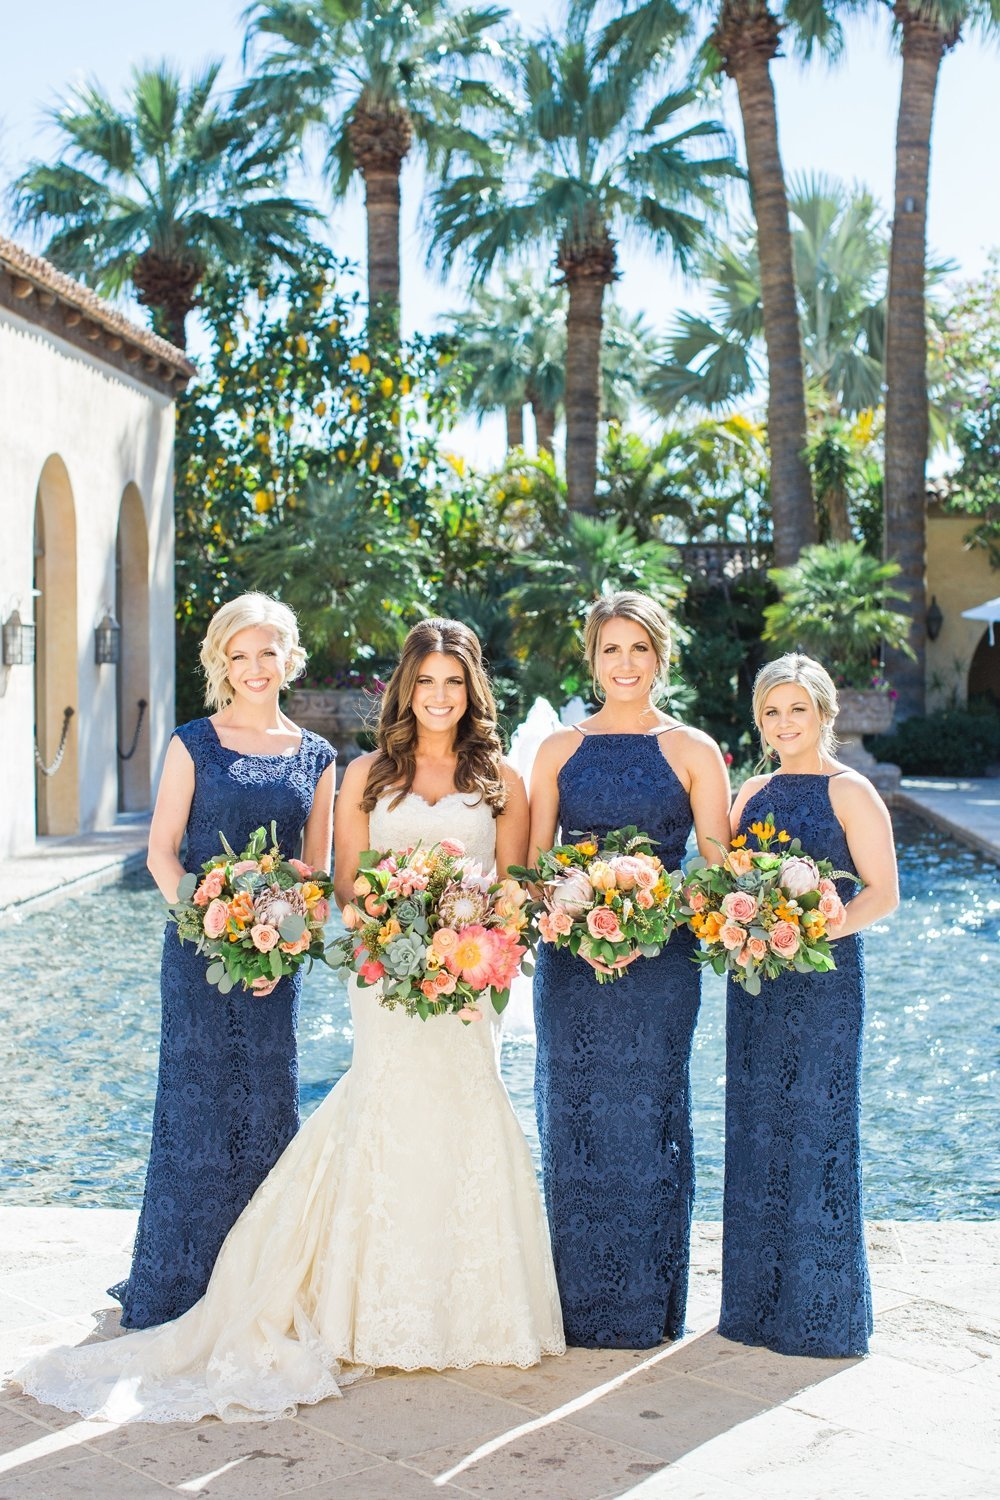 royal-palms-wedding-photographer-arizona-rachael-koscica-photography_0007